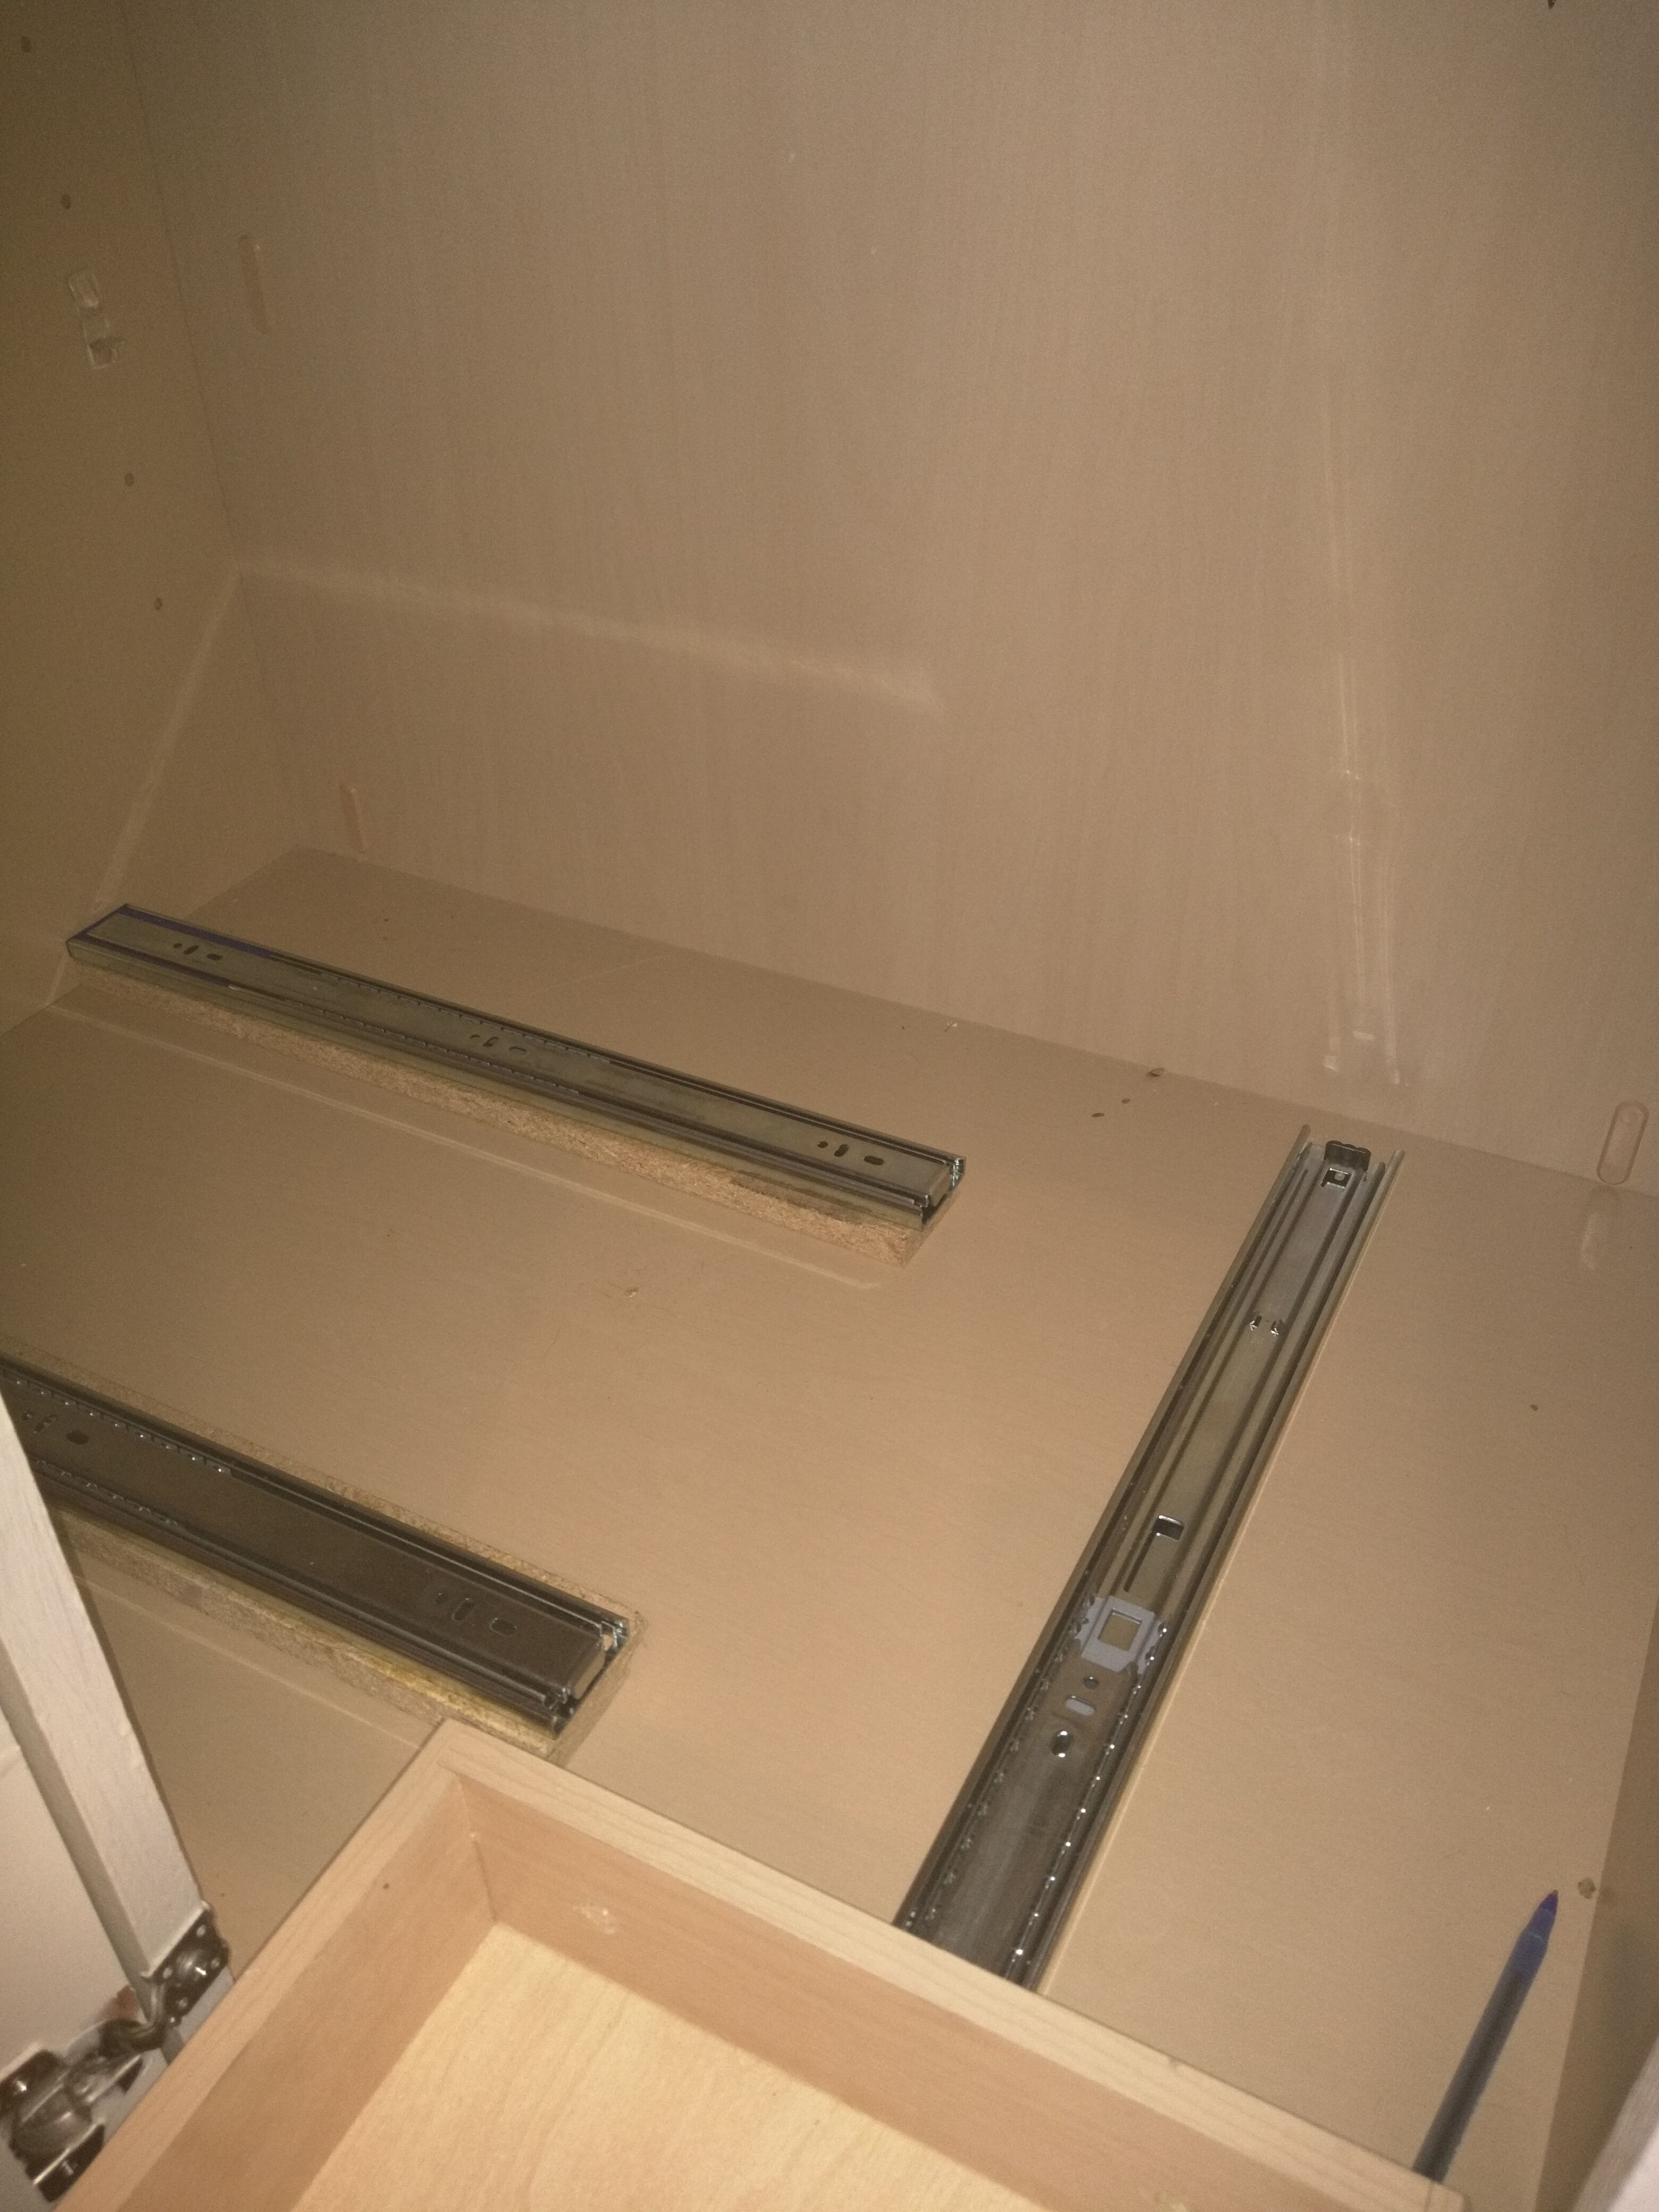 Drawer Slides For Corner Cabinet, Hidden Slides Would Need To Be Positioned  High Enough To Pass Over The Pull Out.